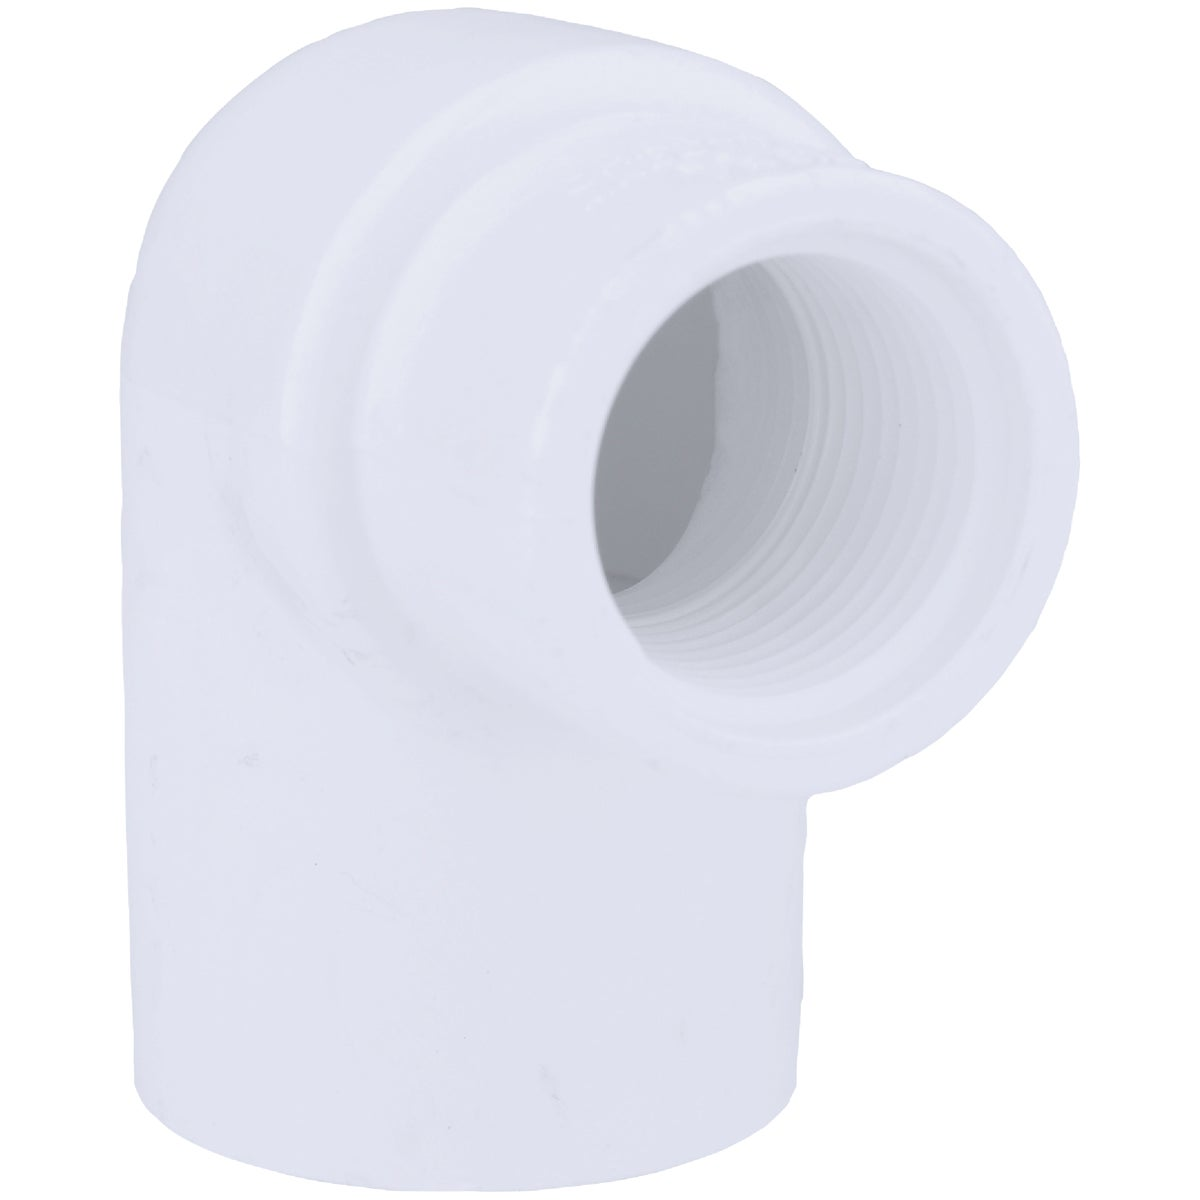 1X3/4 PVC SXFIP ELBOW - 34117 by Genova Inc